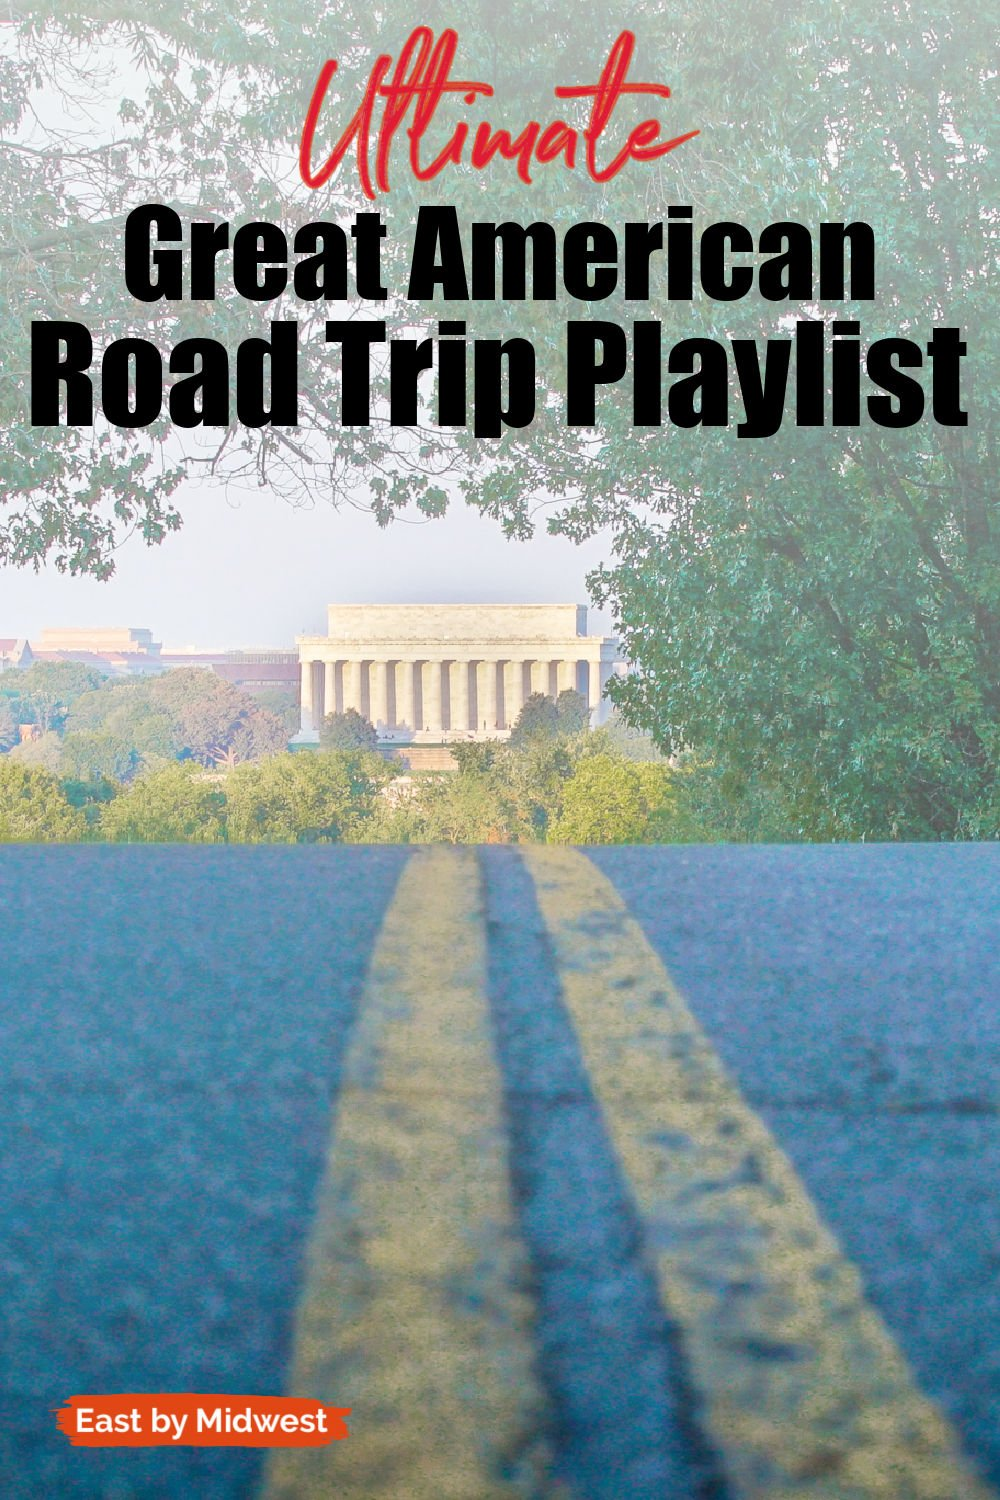 20 Amazing Songs for Your Great American Road Trip Playlist